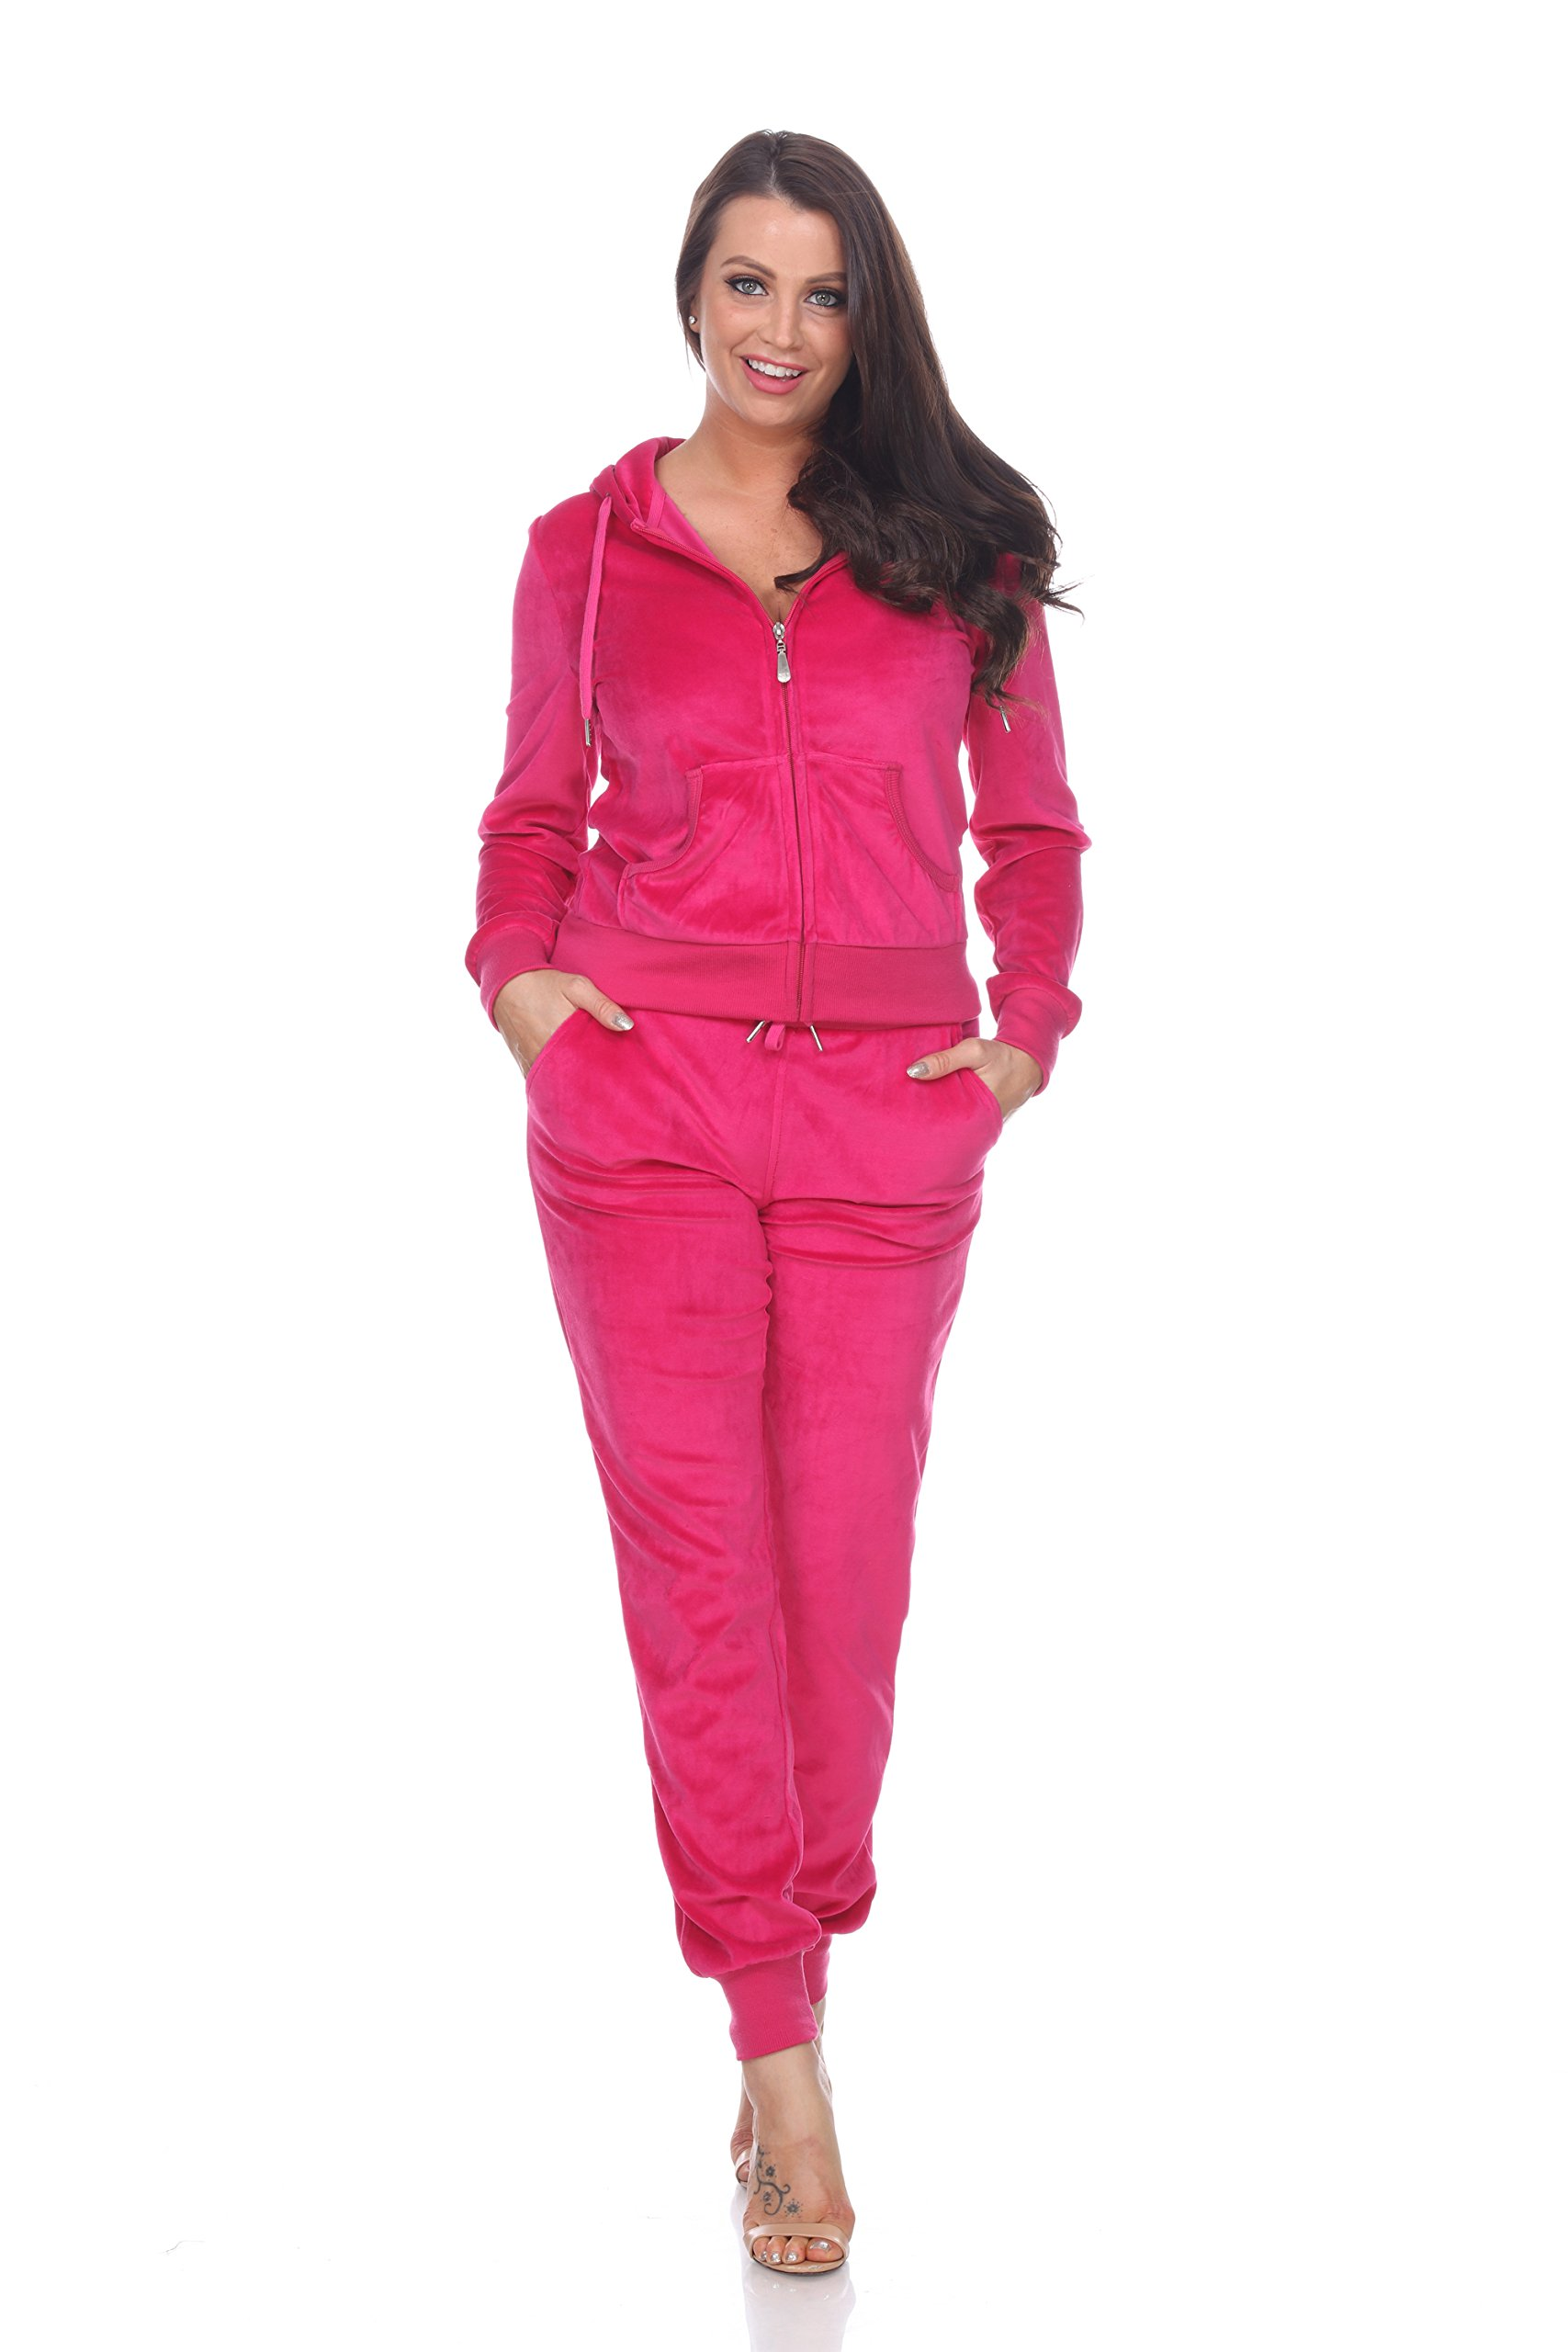 Mili Fitted Velour 2 Piece Tracksuit With Jogger Style Pants & Hoodie Jacket